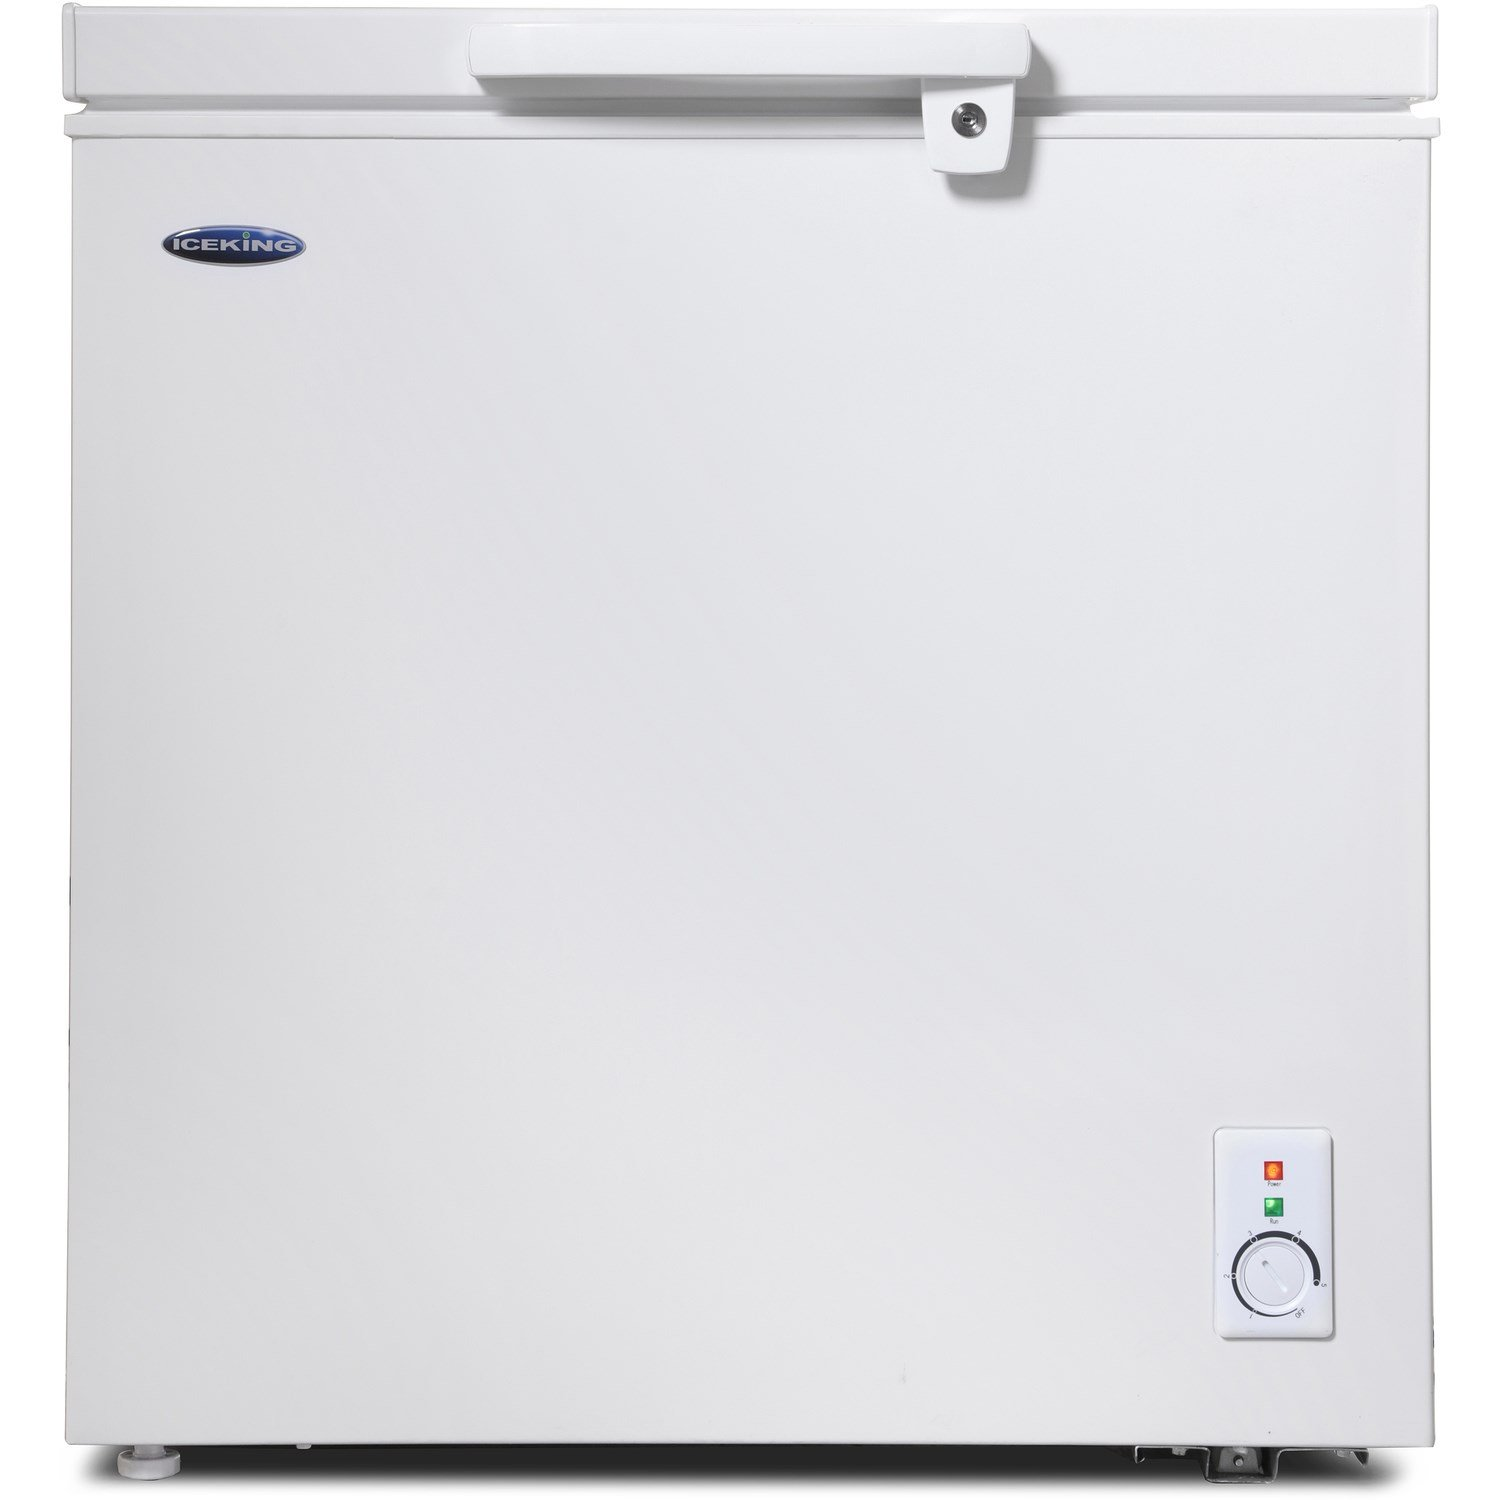 Ice King CF145W 76cm Wide 146Litre Chest Freezer - White [Energy Class A+] Iceking